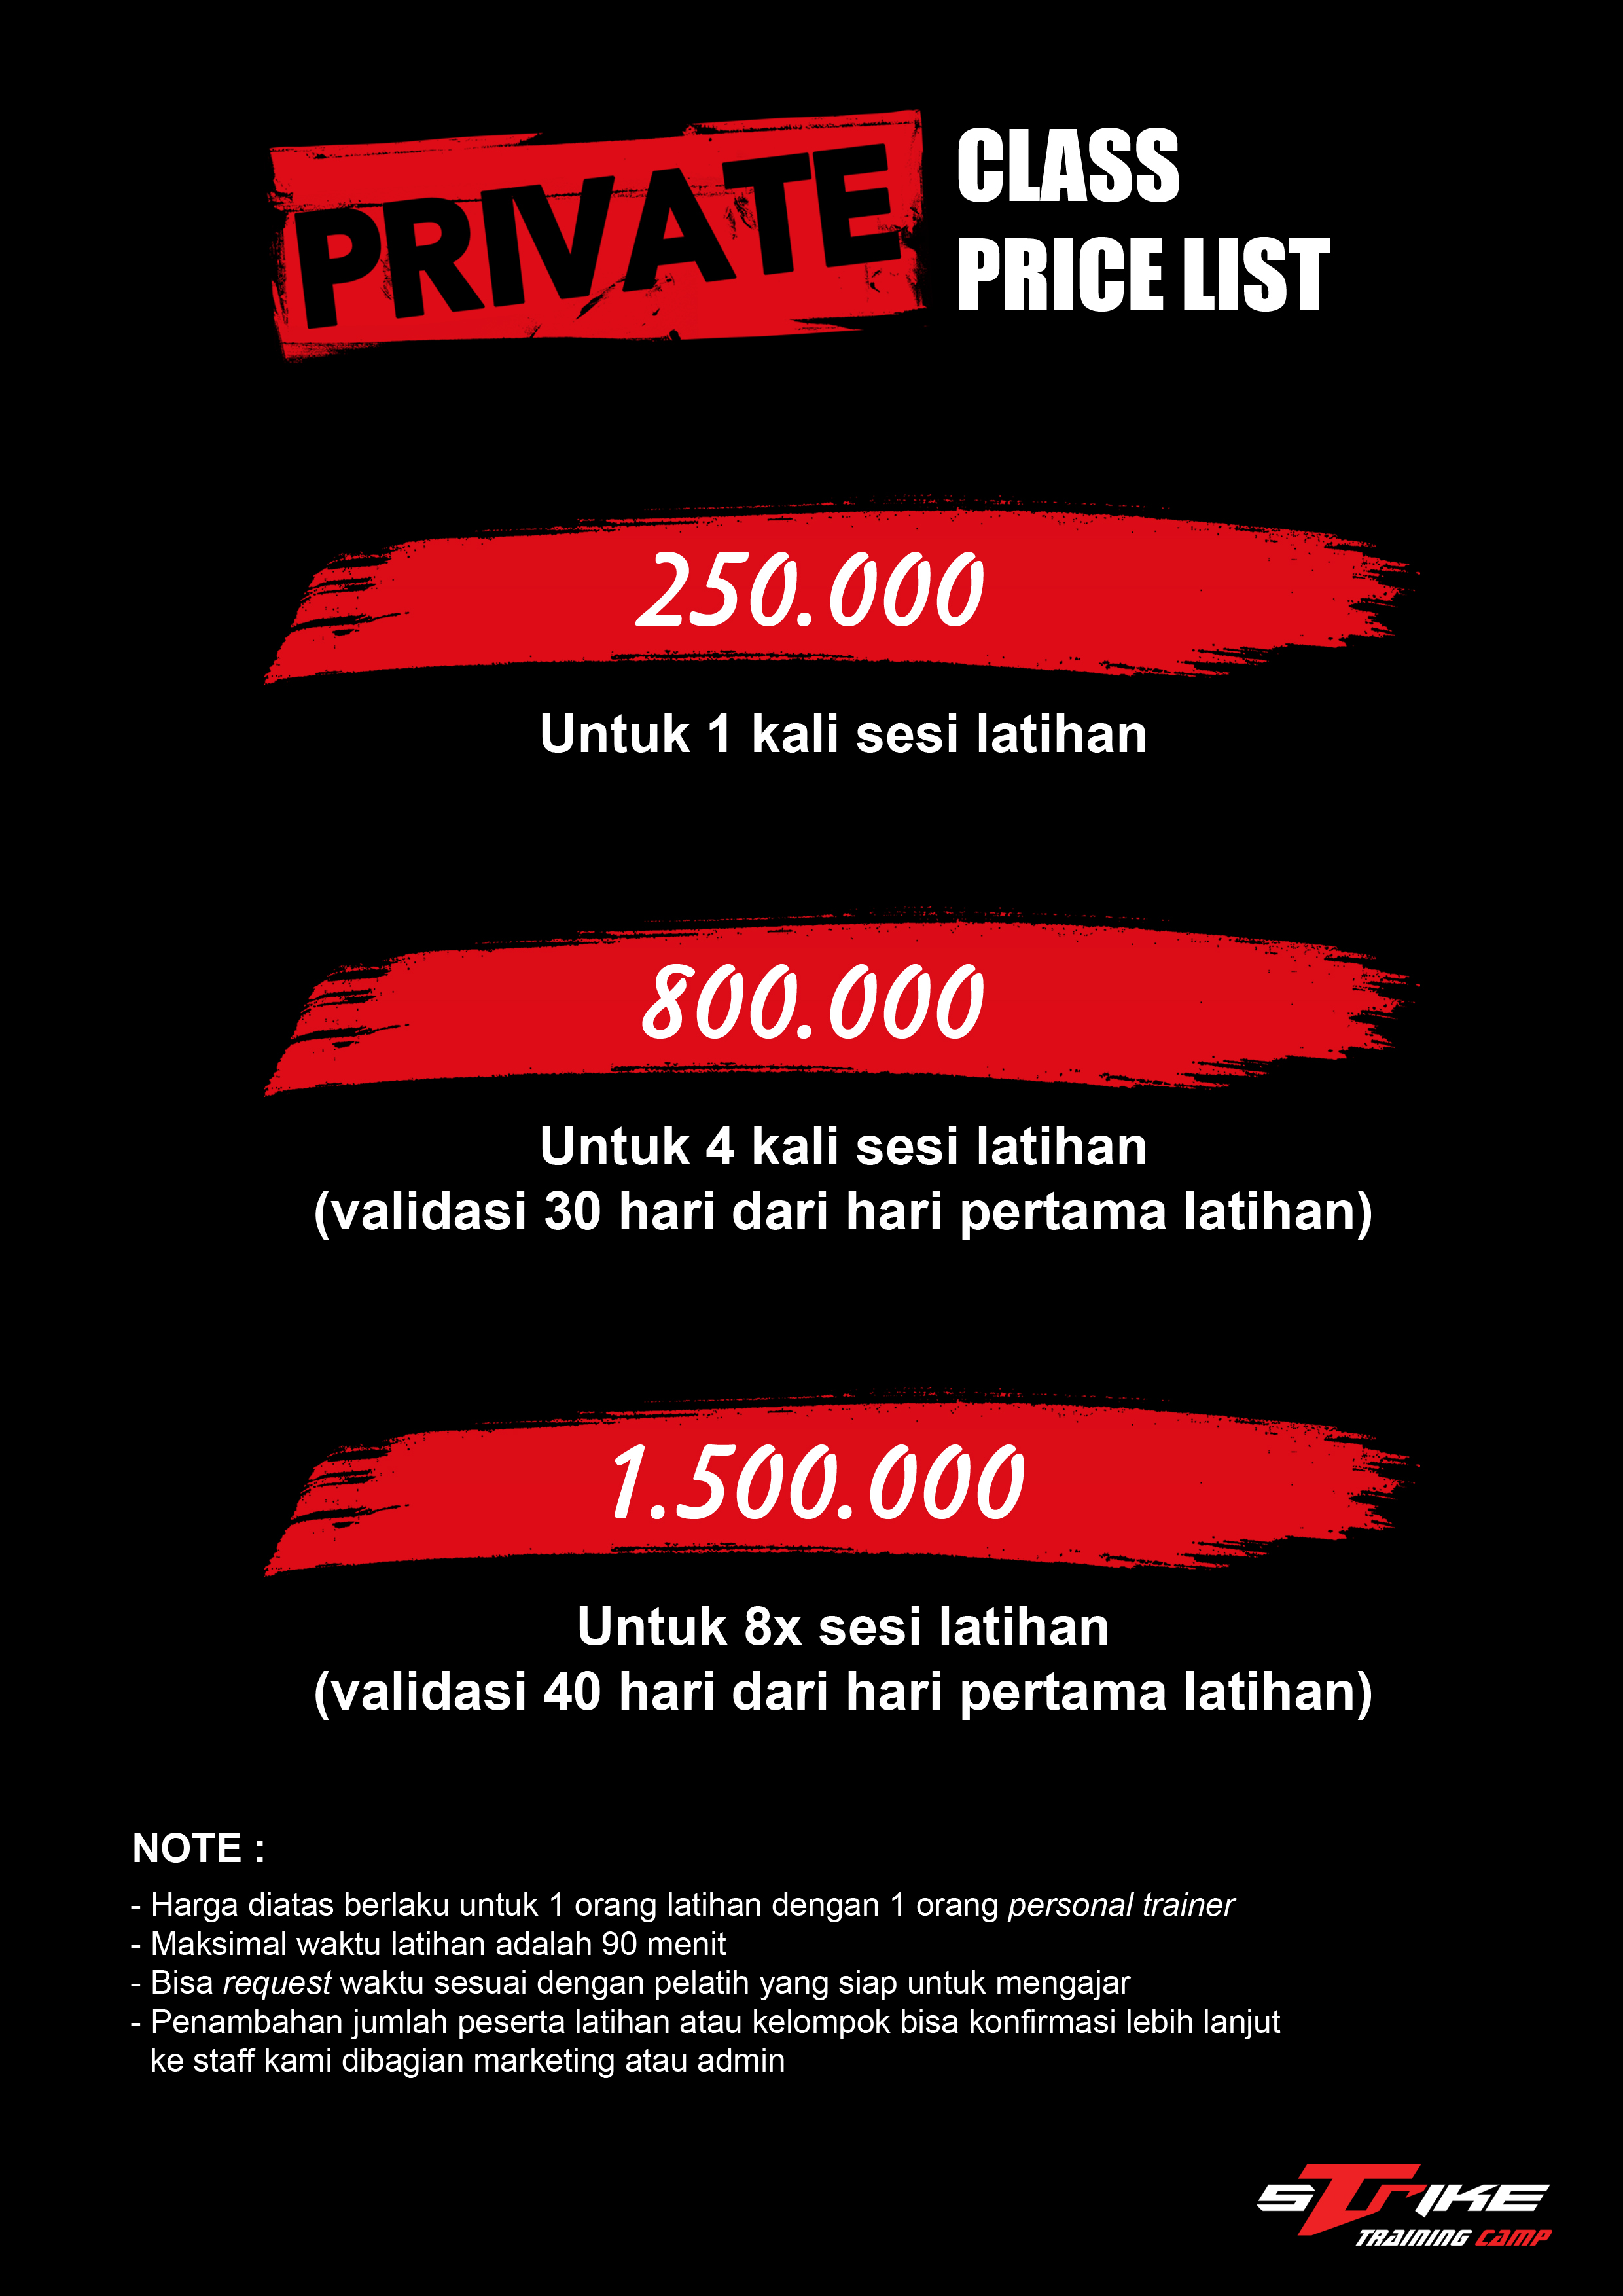 New Price List Private Juni 2020